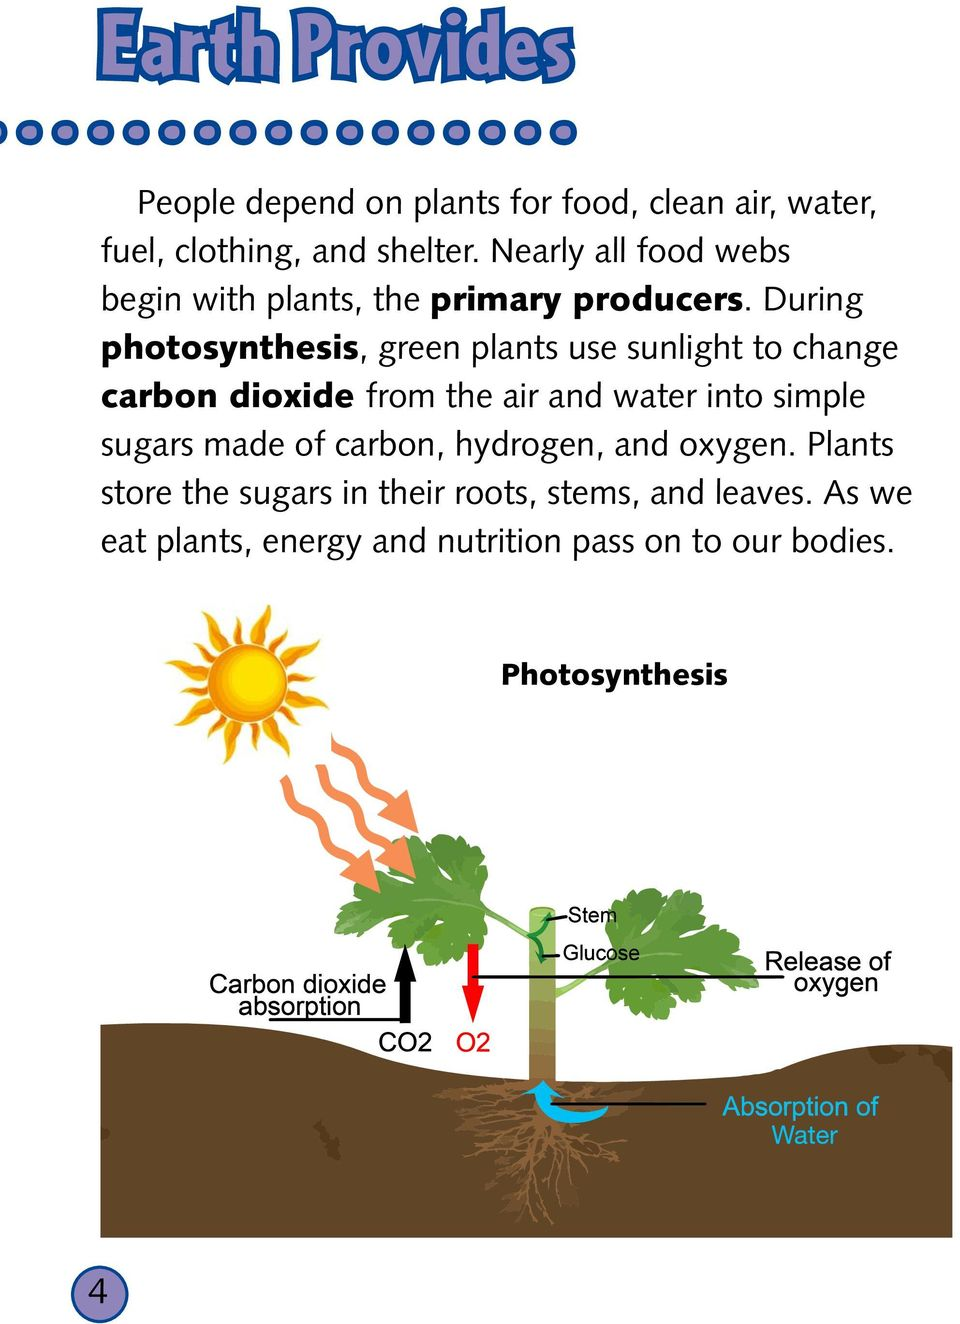 During photosynthesis, green plants use sunlight to change carbon dioxide from the air and water into simple sugars